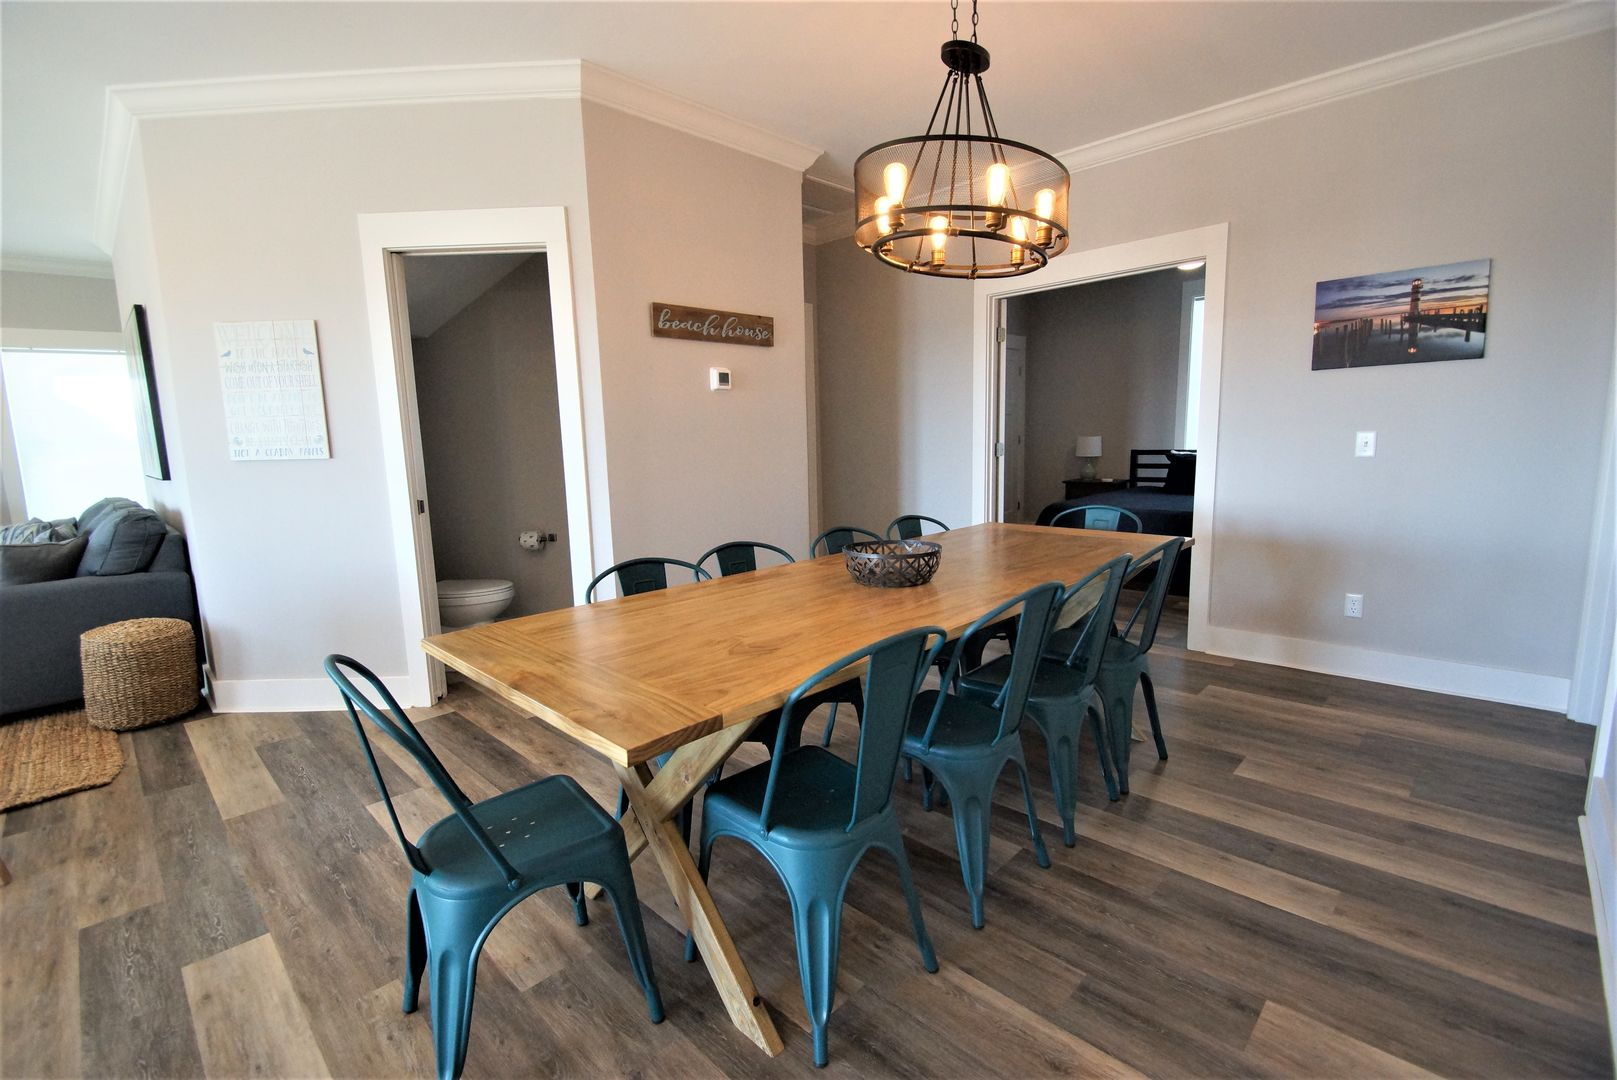 Beautiful dining area equipped to seat 10 with large table and chairs.